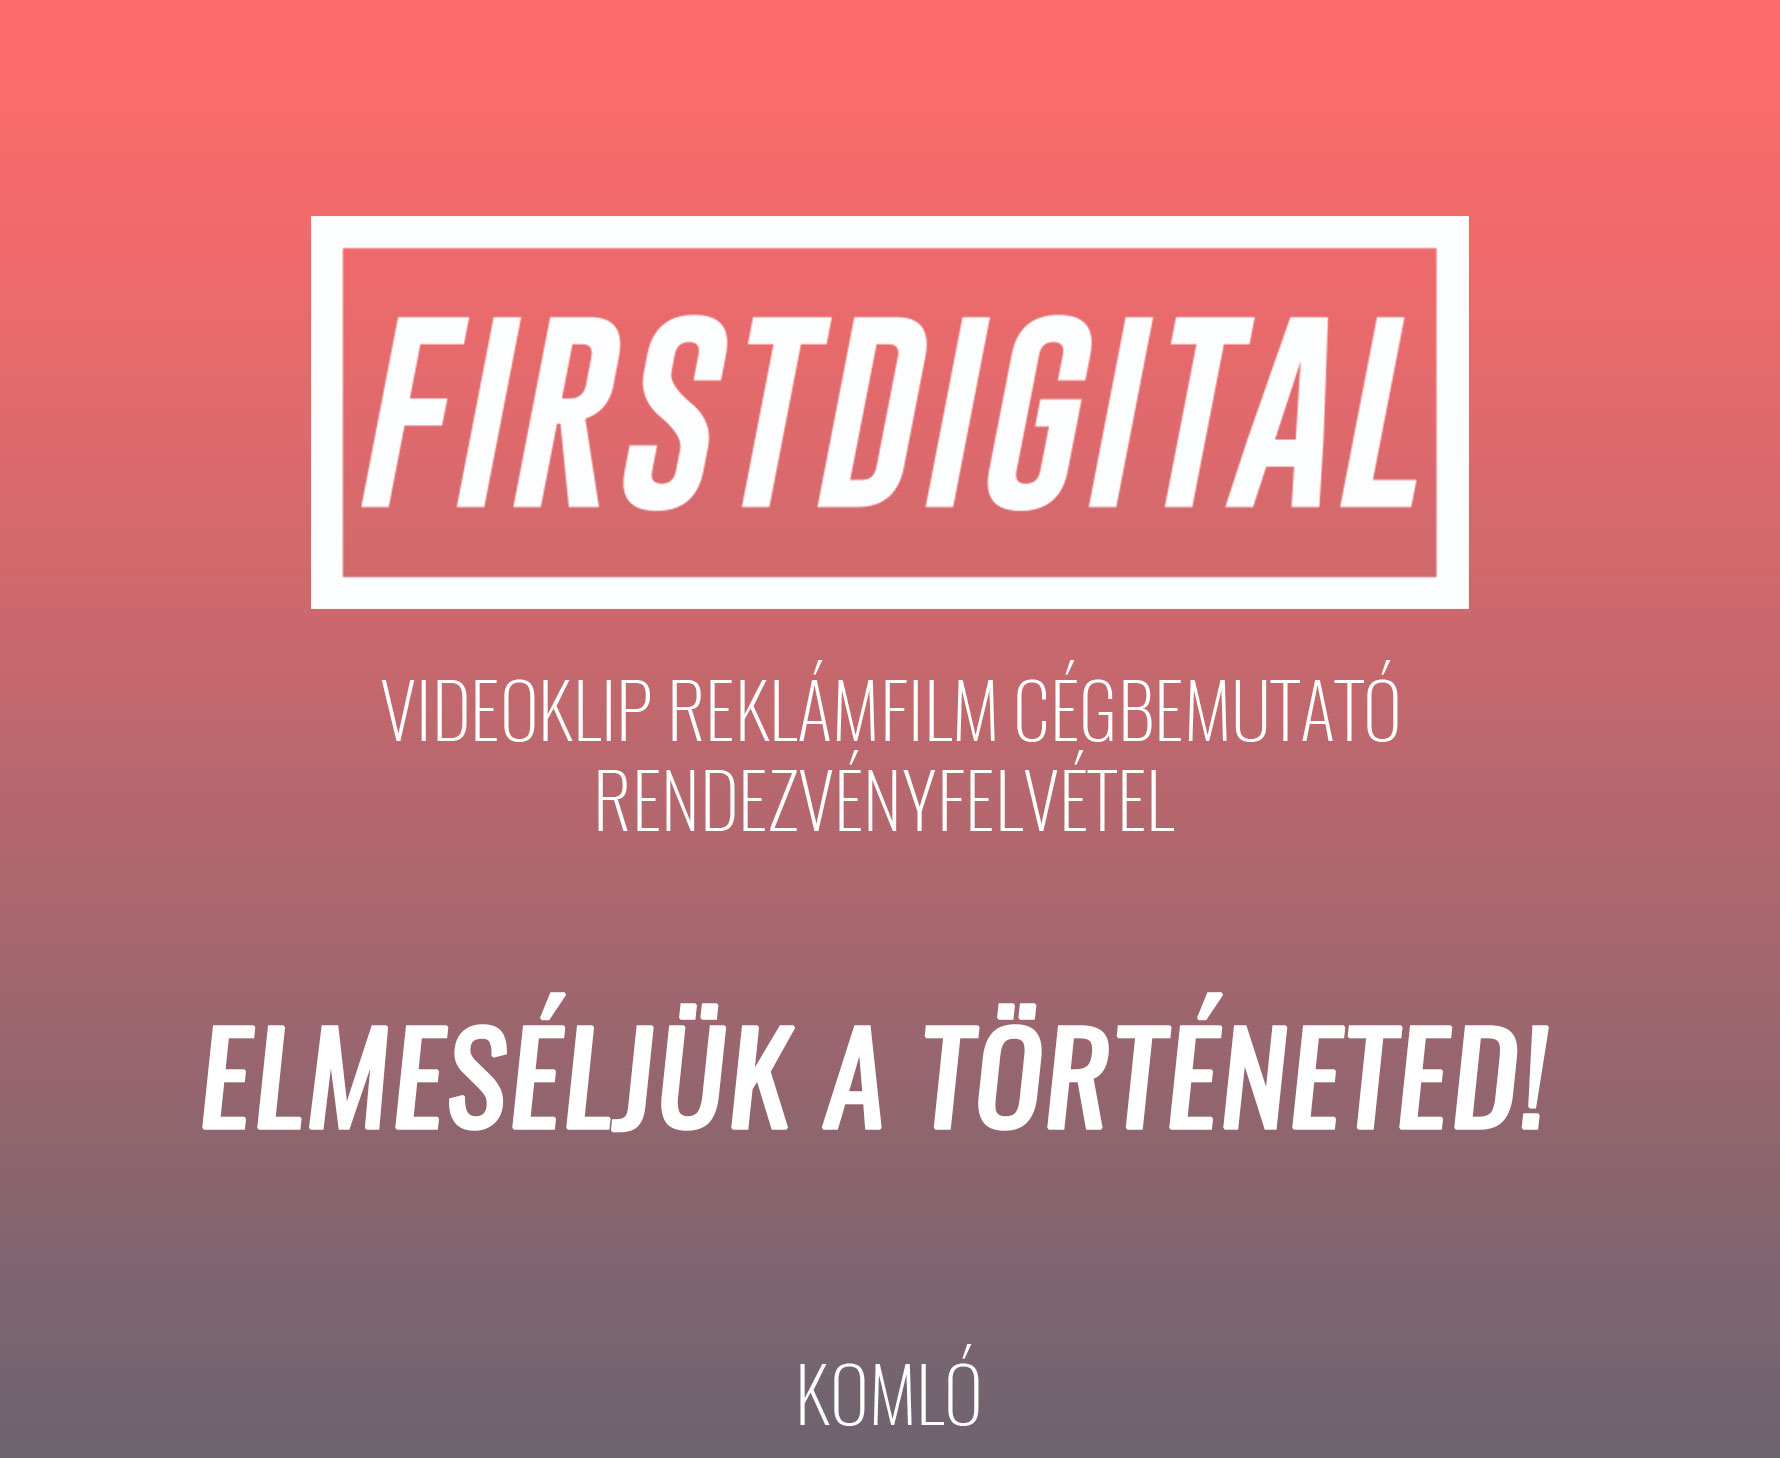 FirstDigital